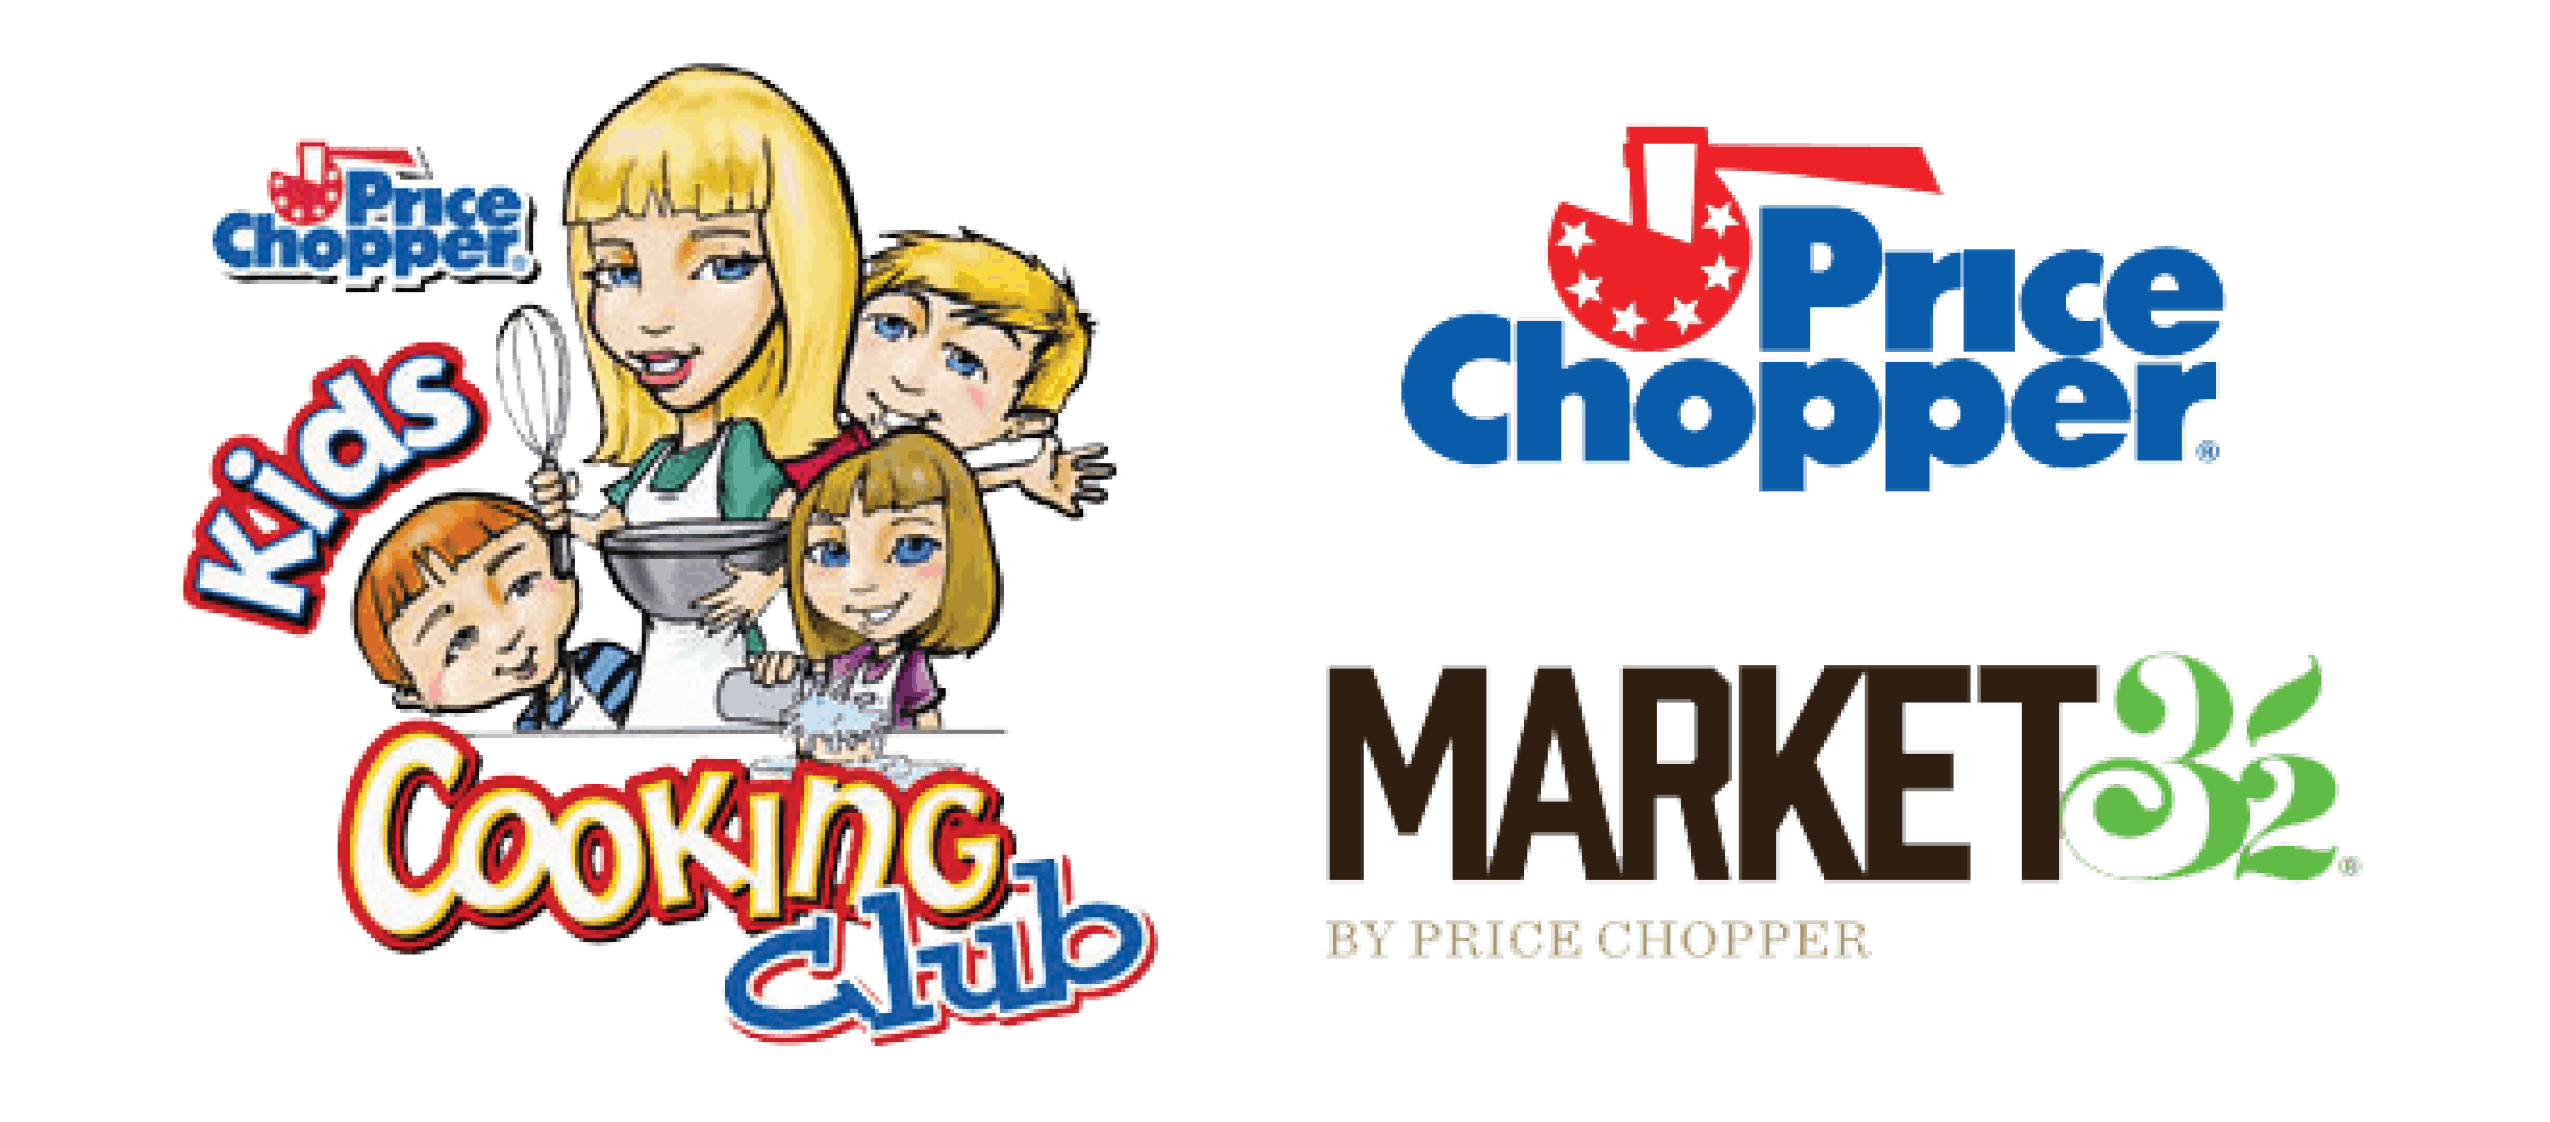 Price Chopper Kids Cooking Club logo next to Price Chopper and Market 32 logos